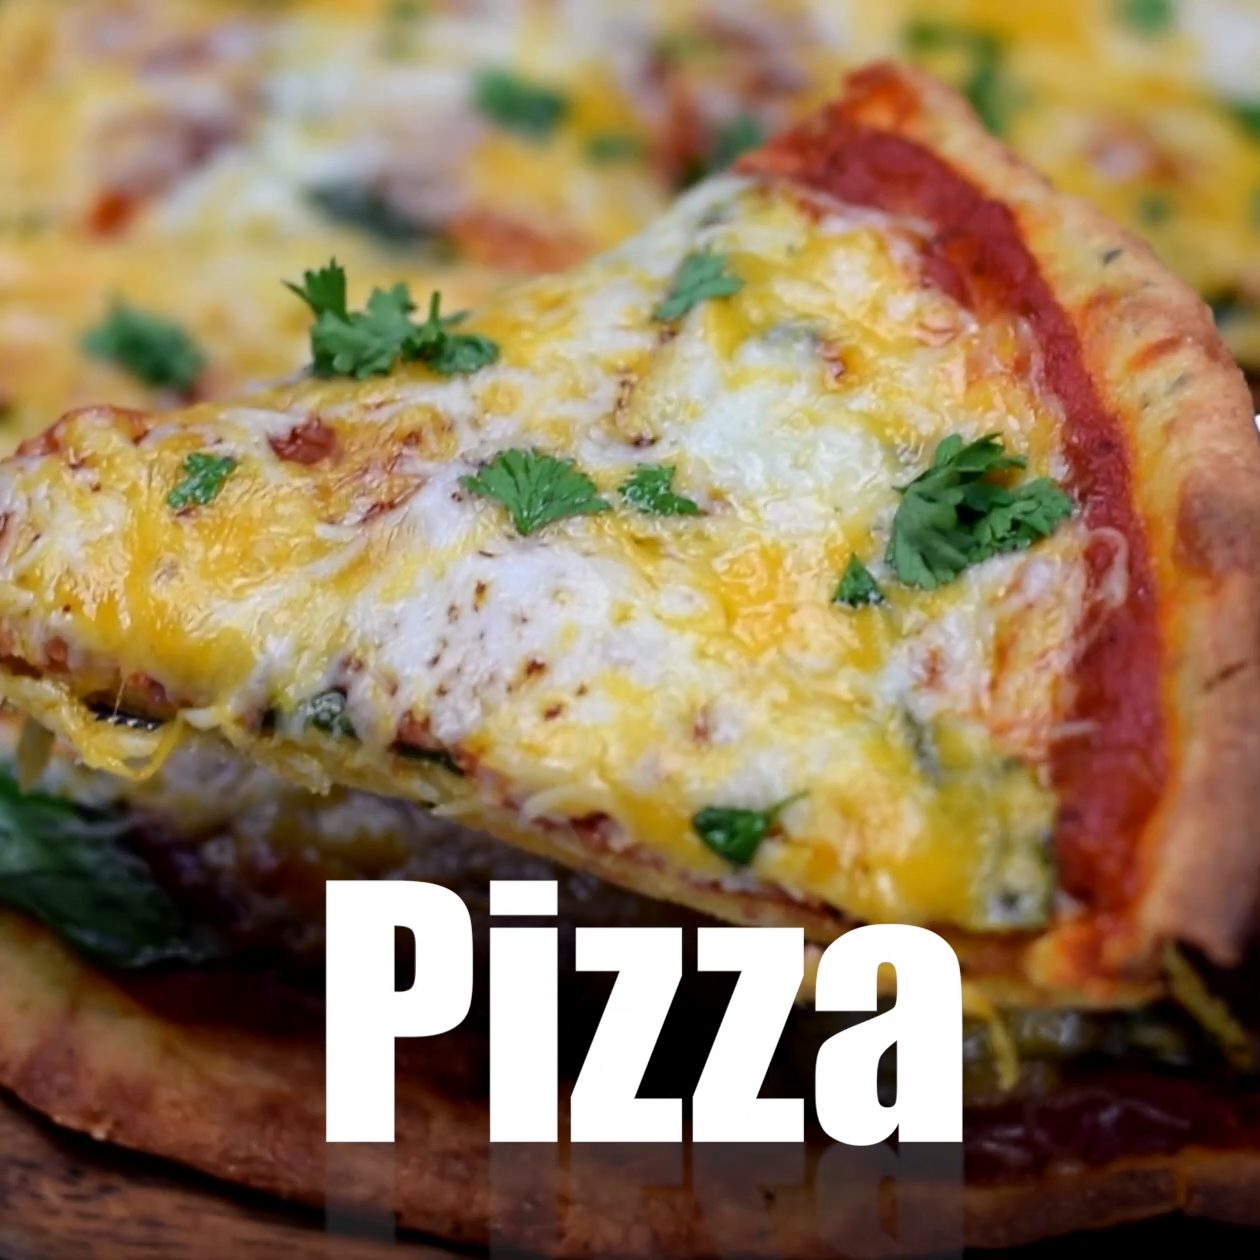 Keto Low-Carb Fathead Three Cheese Pepperoni Pizza images